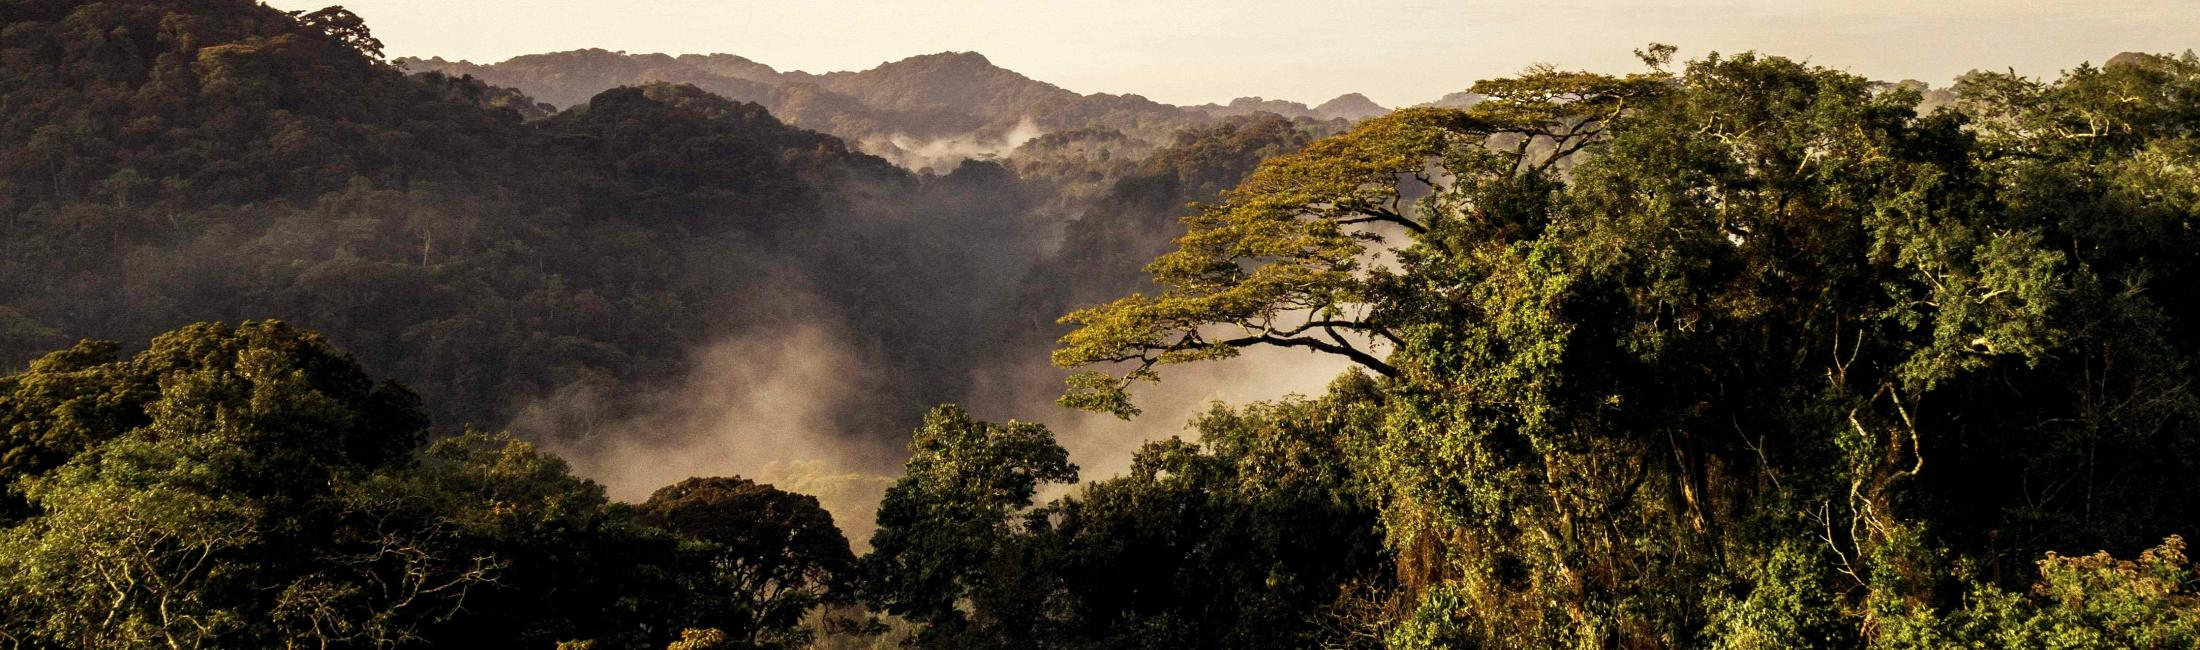 Morning view on Gishwati Mukura-National Park (Rwanda)